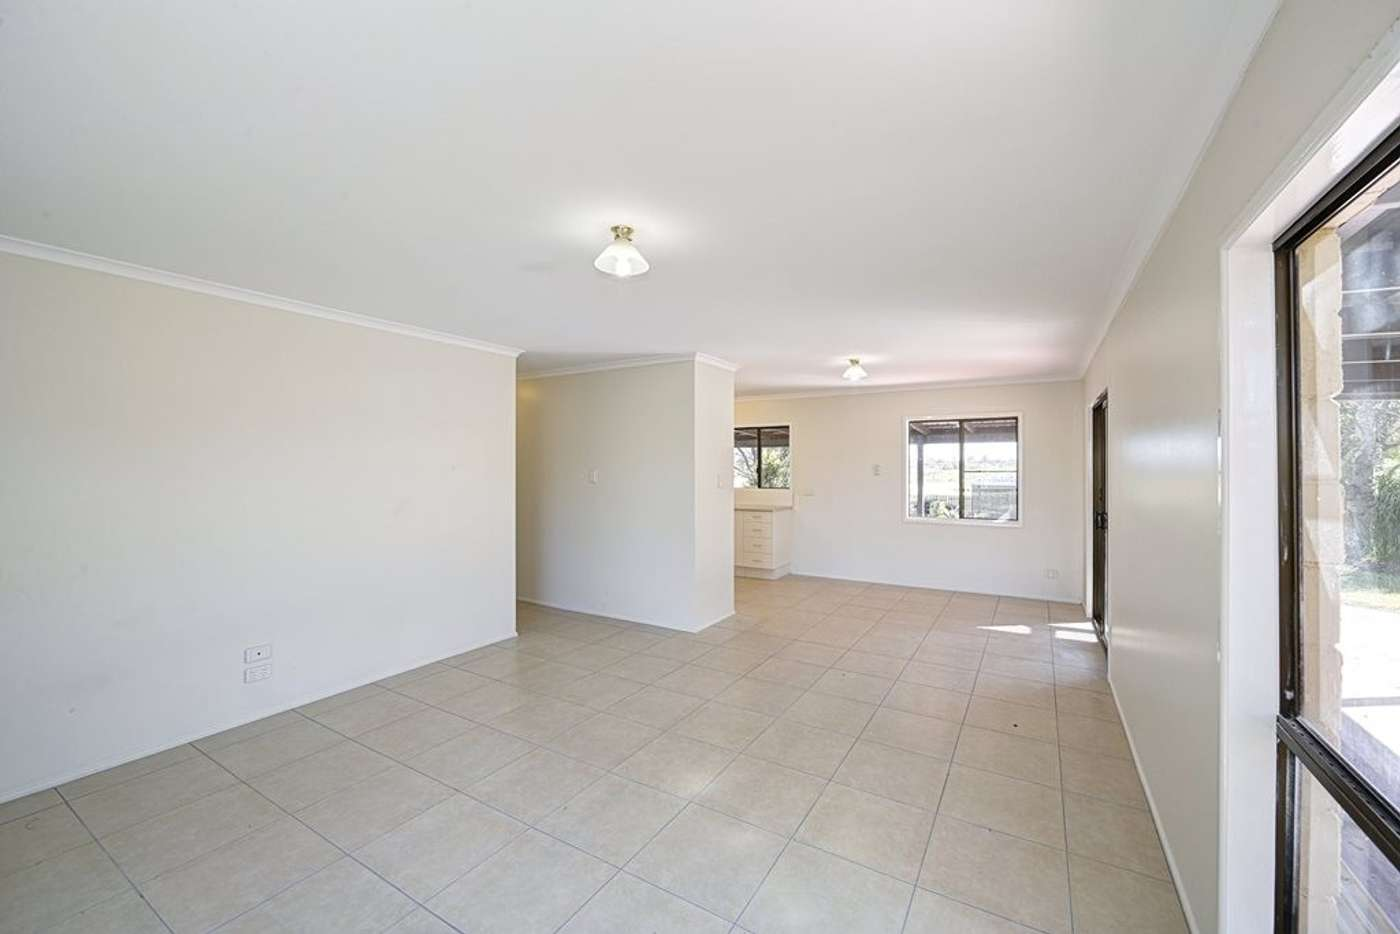 Seventh view of Homely house listing, 8 Bisdee Street, Coral Cove QLD 4670